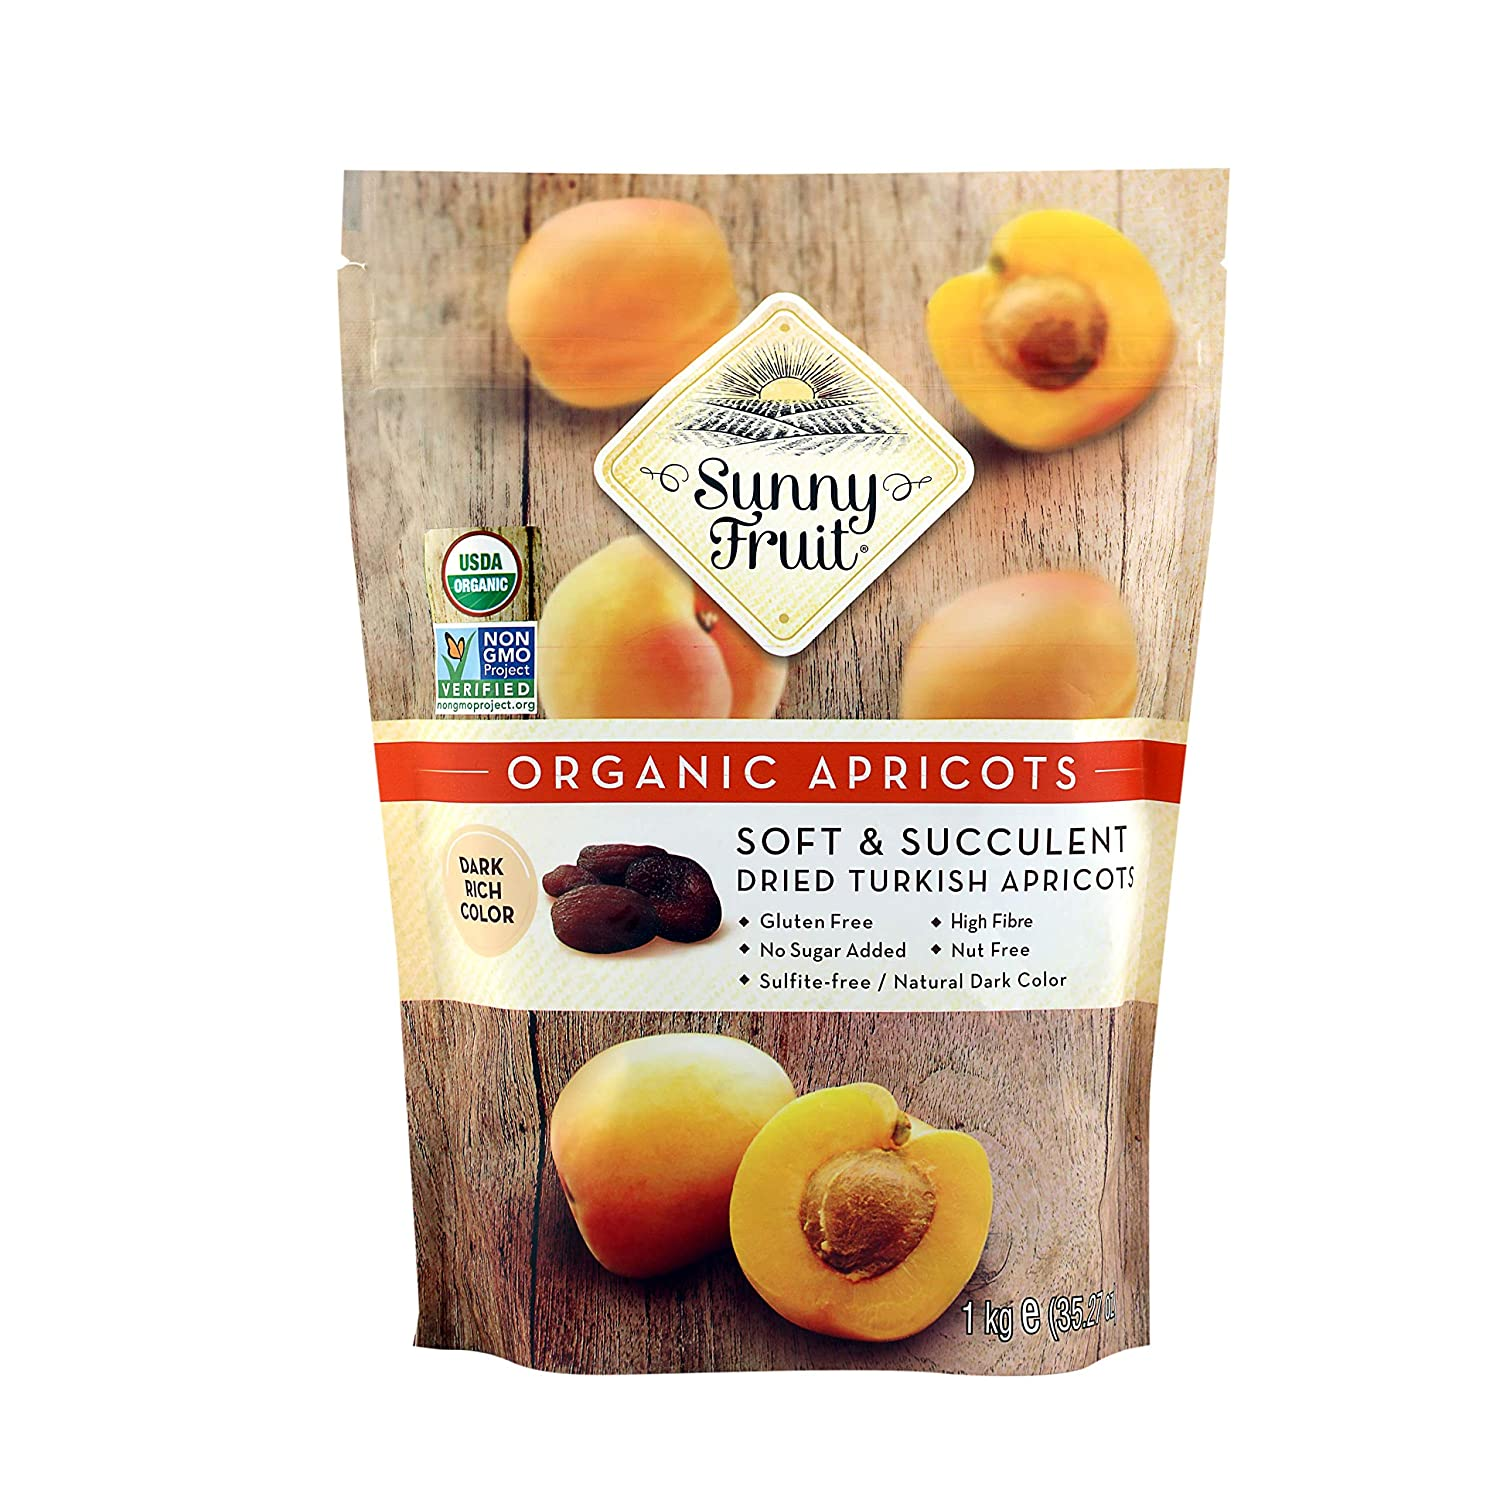 ORGANIC Turkish Dried Apricots - Sunny Fruit - 32oz Bulk Bag | Purely Apricots - NO Added Sugars, Sulfurs or Preservatives | NON-GMO, VEGAN, HALAL & KOSHER